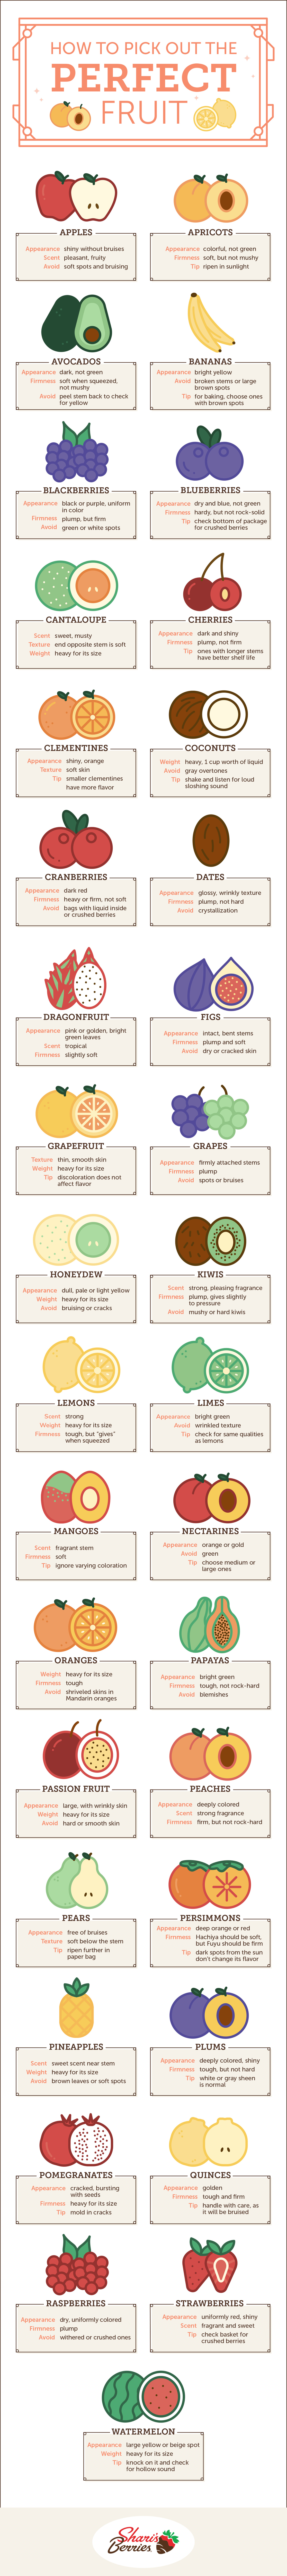 Picking-the-Perfect-Fruit